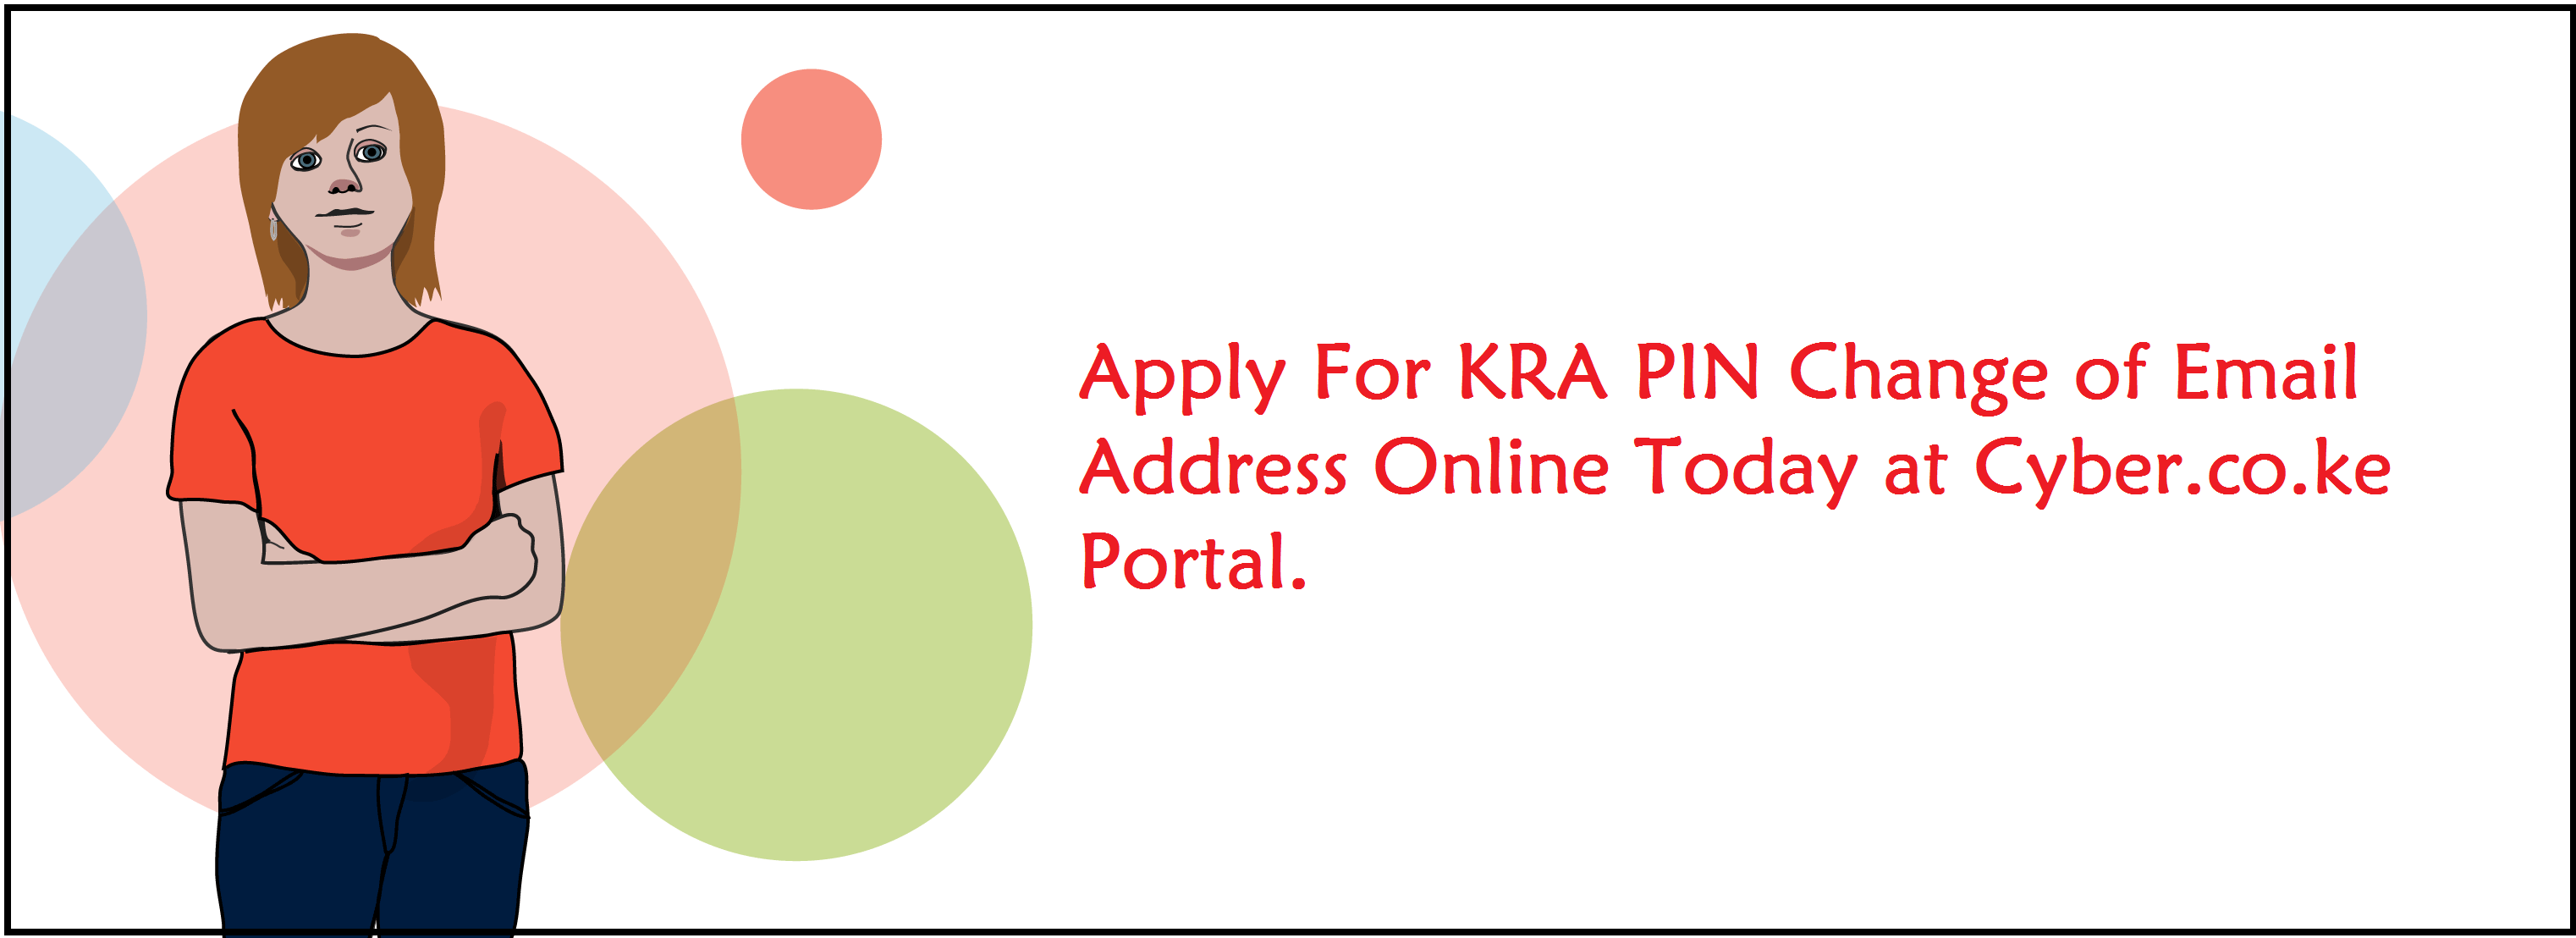 kra pin change of email address services at cyber.co.ke portal